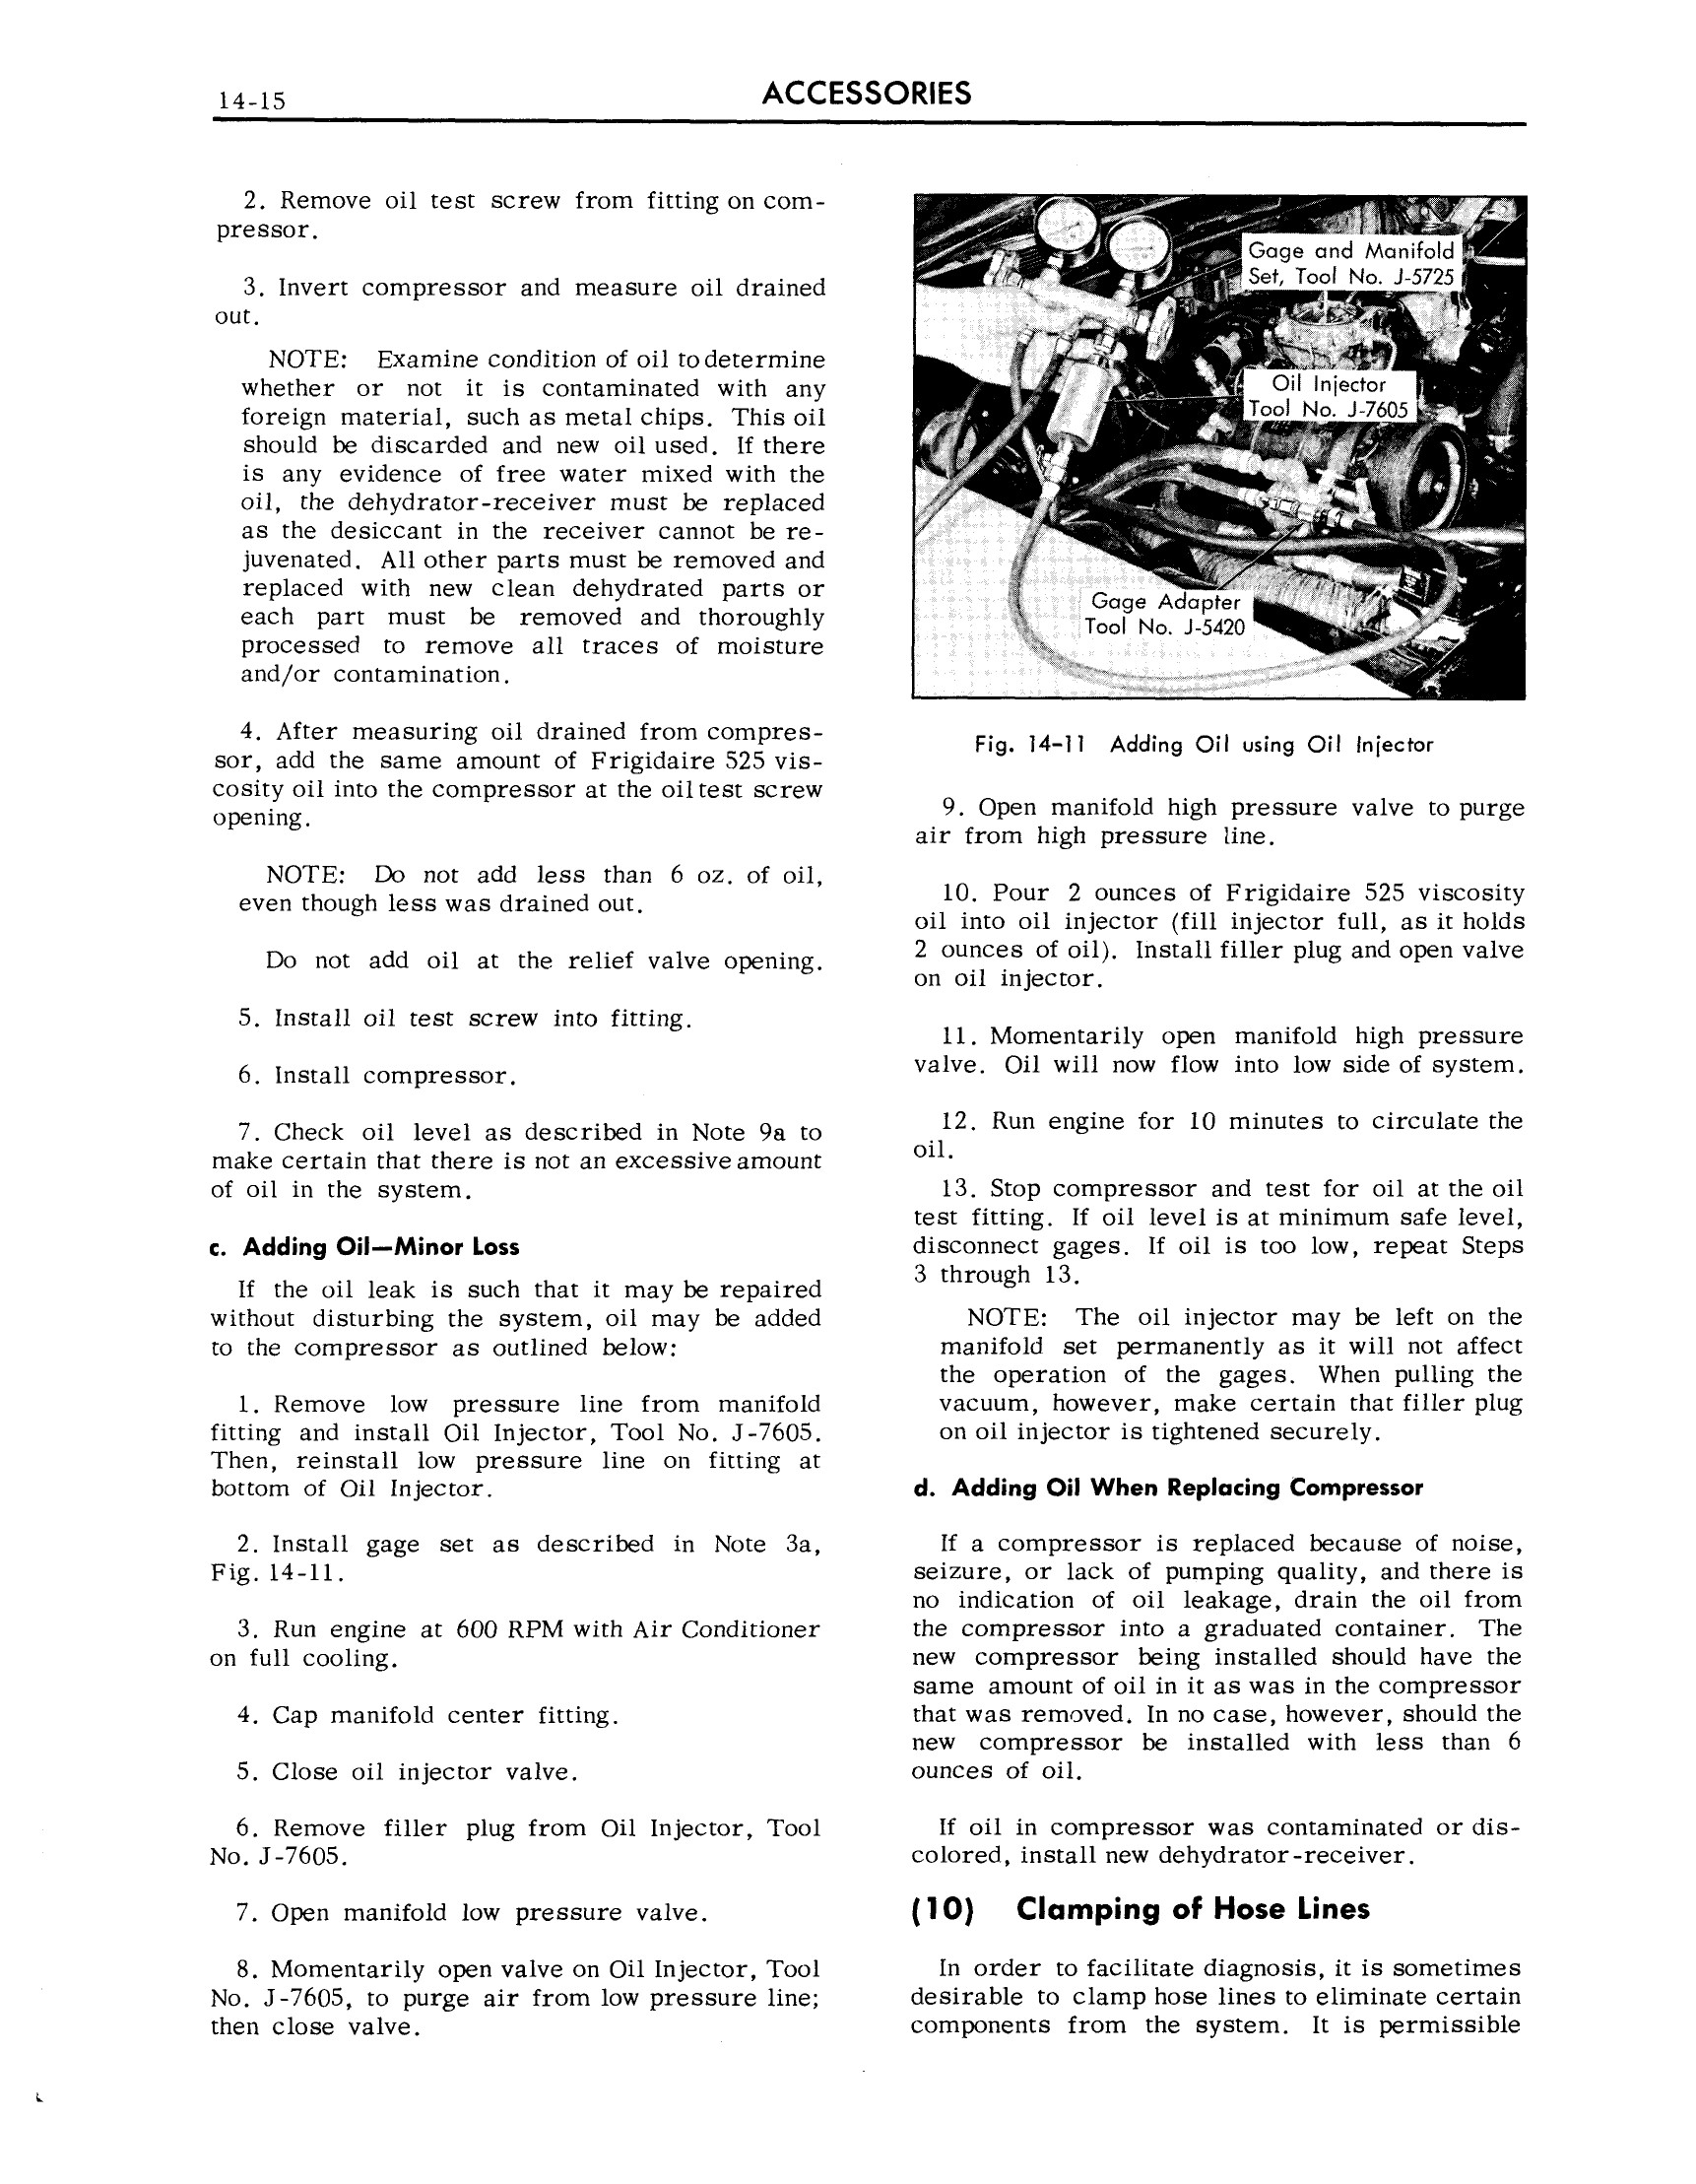 1959 Cadillac Shop Manual- Accessories Page 15 of 58